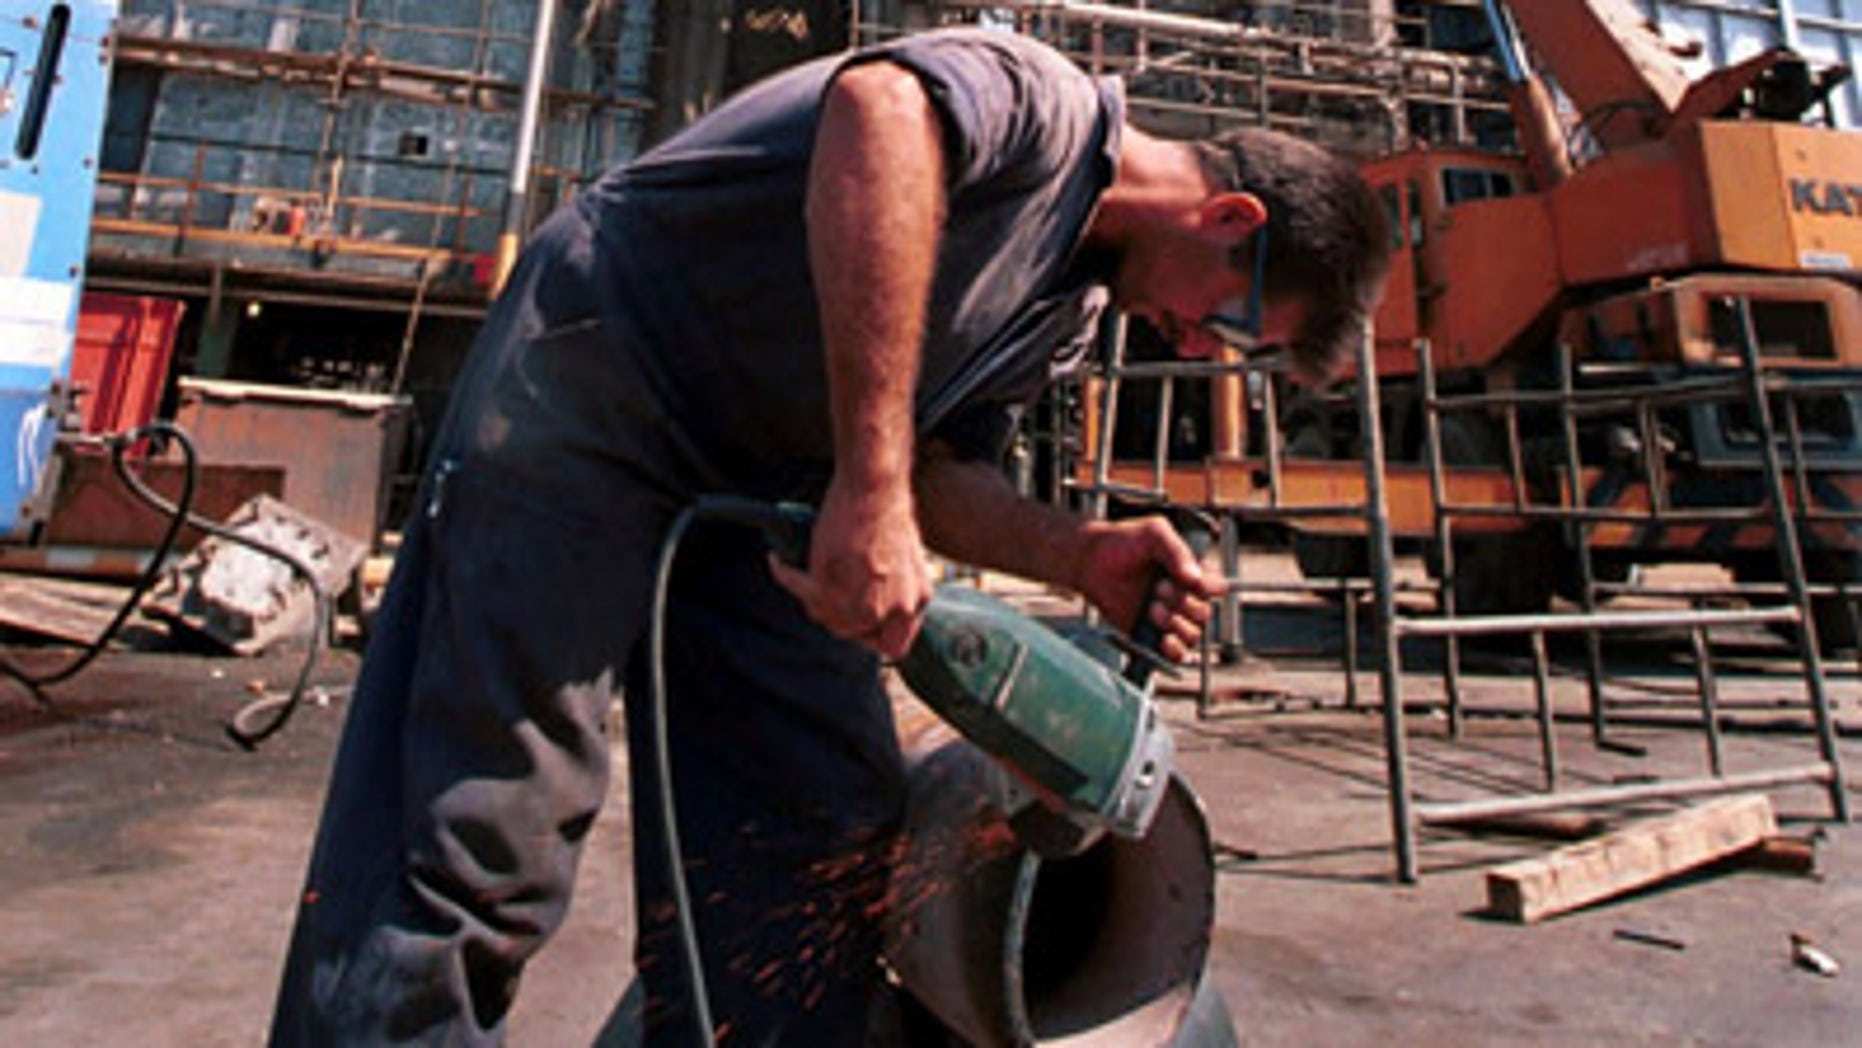 In this Sept. 27, 2000 file photo, an Iranian oil worker repairs a pipe at an oil refinery in Tehran. Iran has halted oil shipments to Britain and France, the Oil Ministry said Sunday, in an apparent pre-emptive blow against the European Union after the bloc imposed sanctions on Iran's crucial fuel exports.